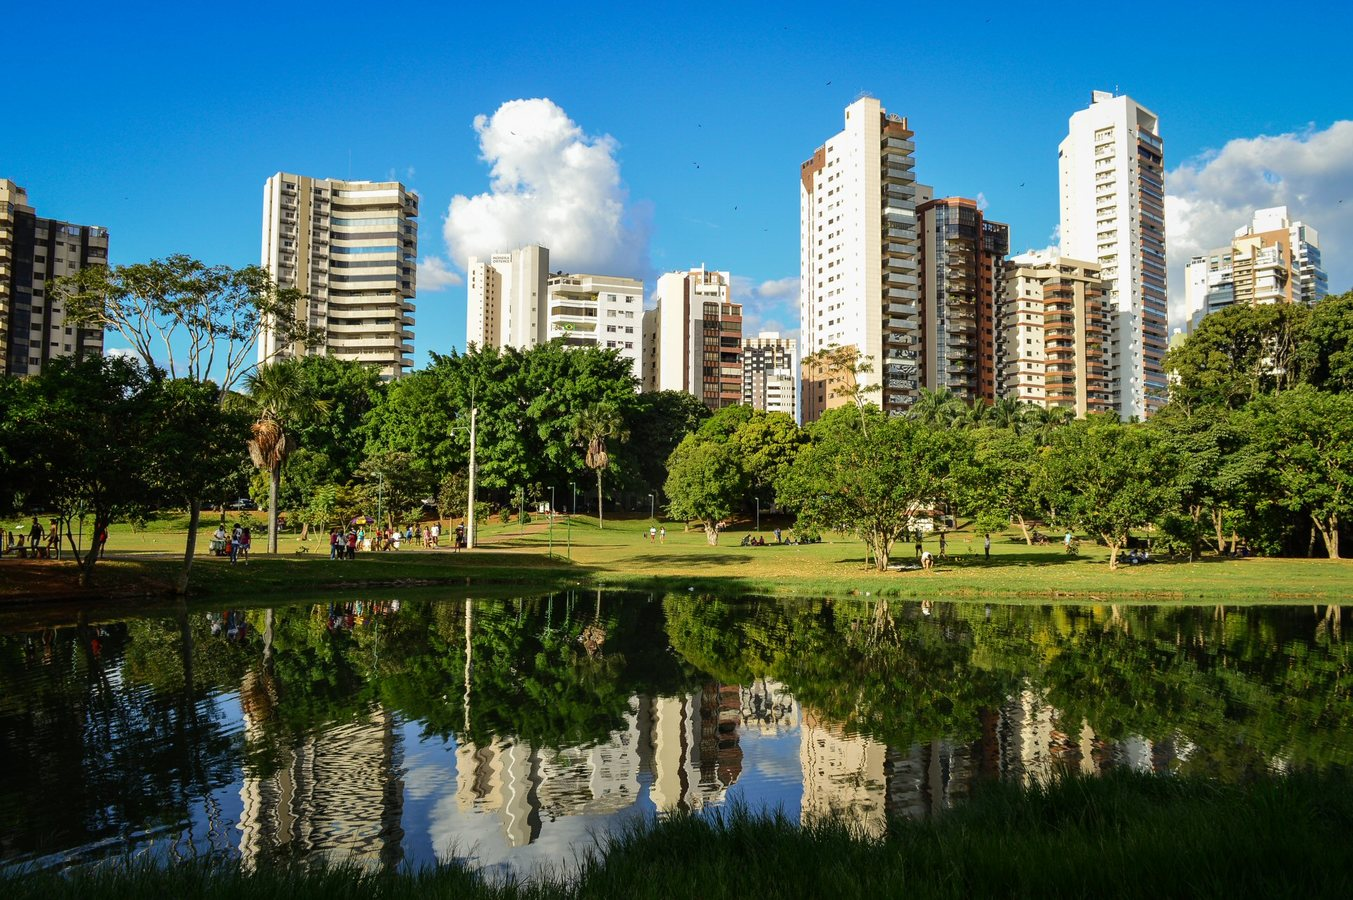 Brazil - Photography - Tourism - The Green City - December